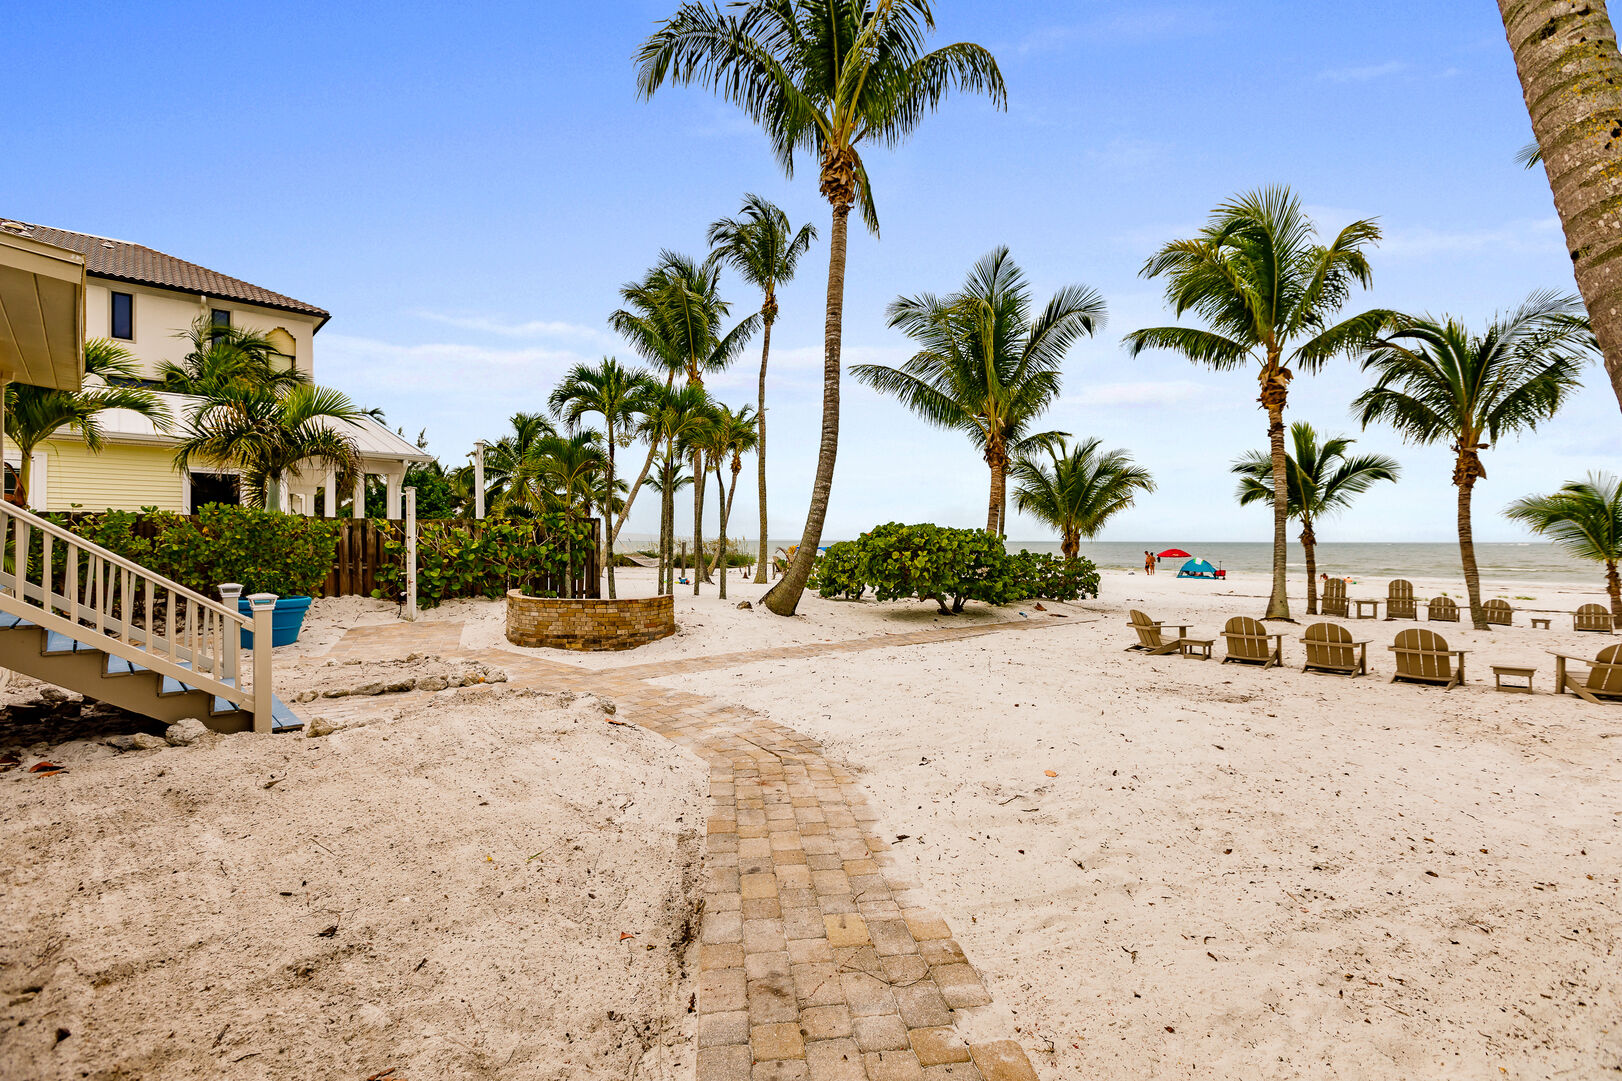 Walkway and Outdoor Seating Private Beach House Rental in Florida